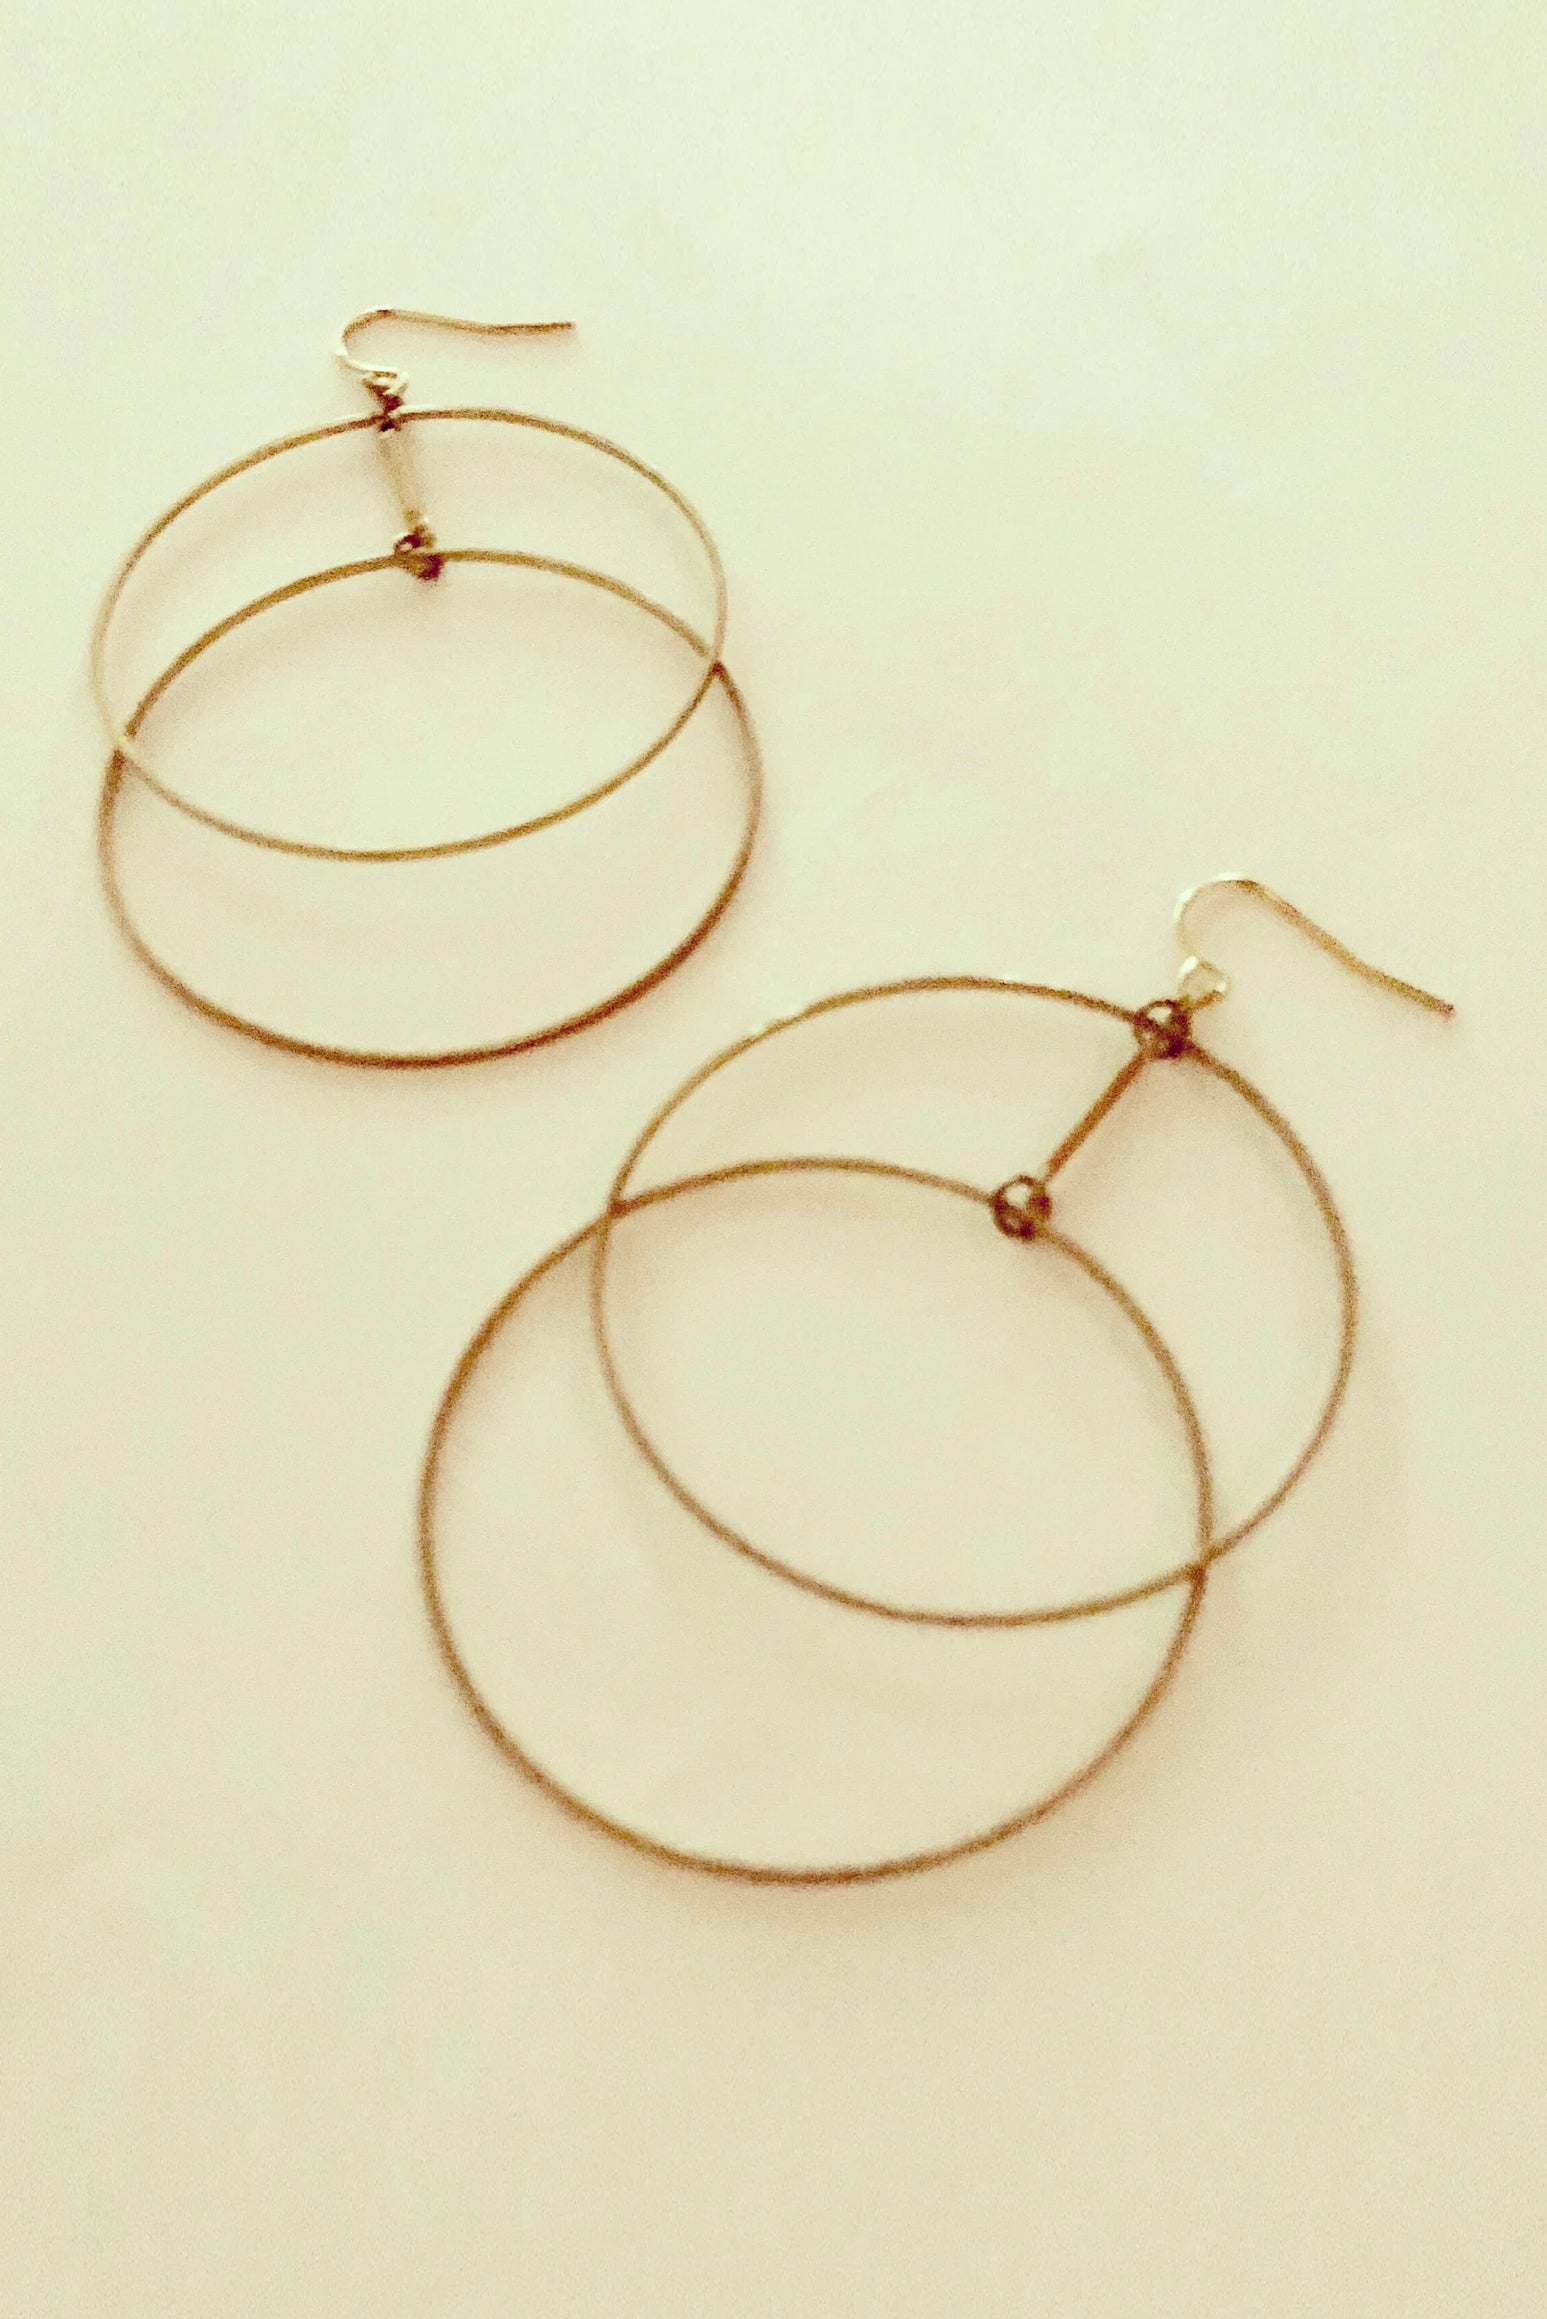 Ruuye earrings by Darlings of Denmark; raw brass; delicate, thin, staggered, double-hoop earrings; flat lay